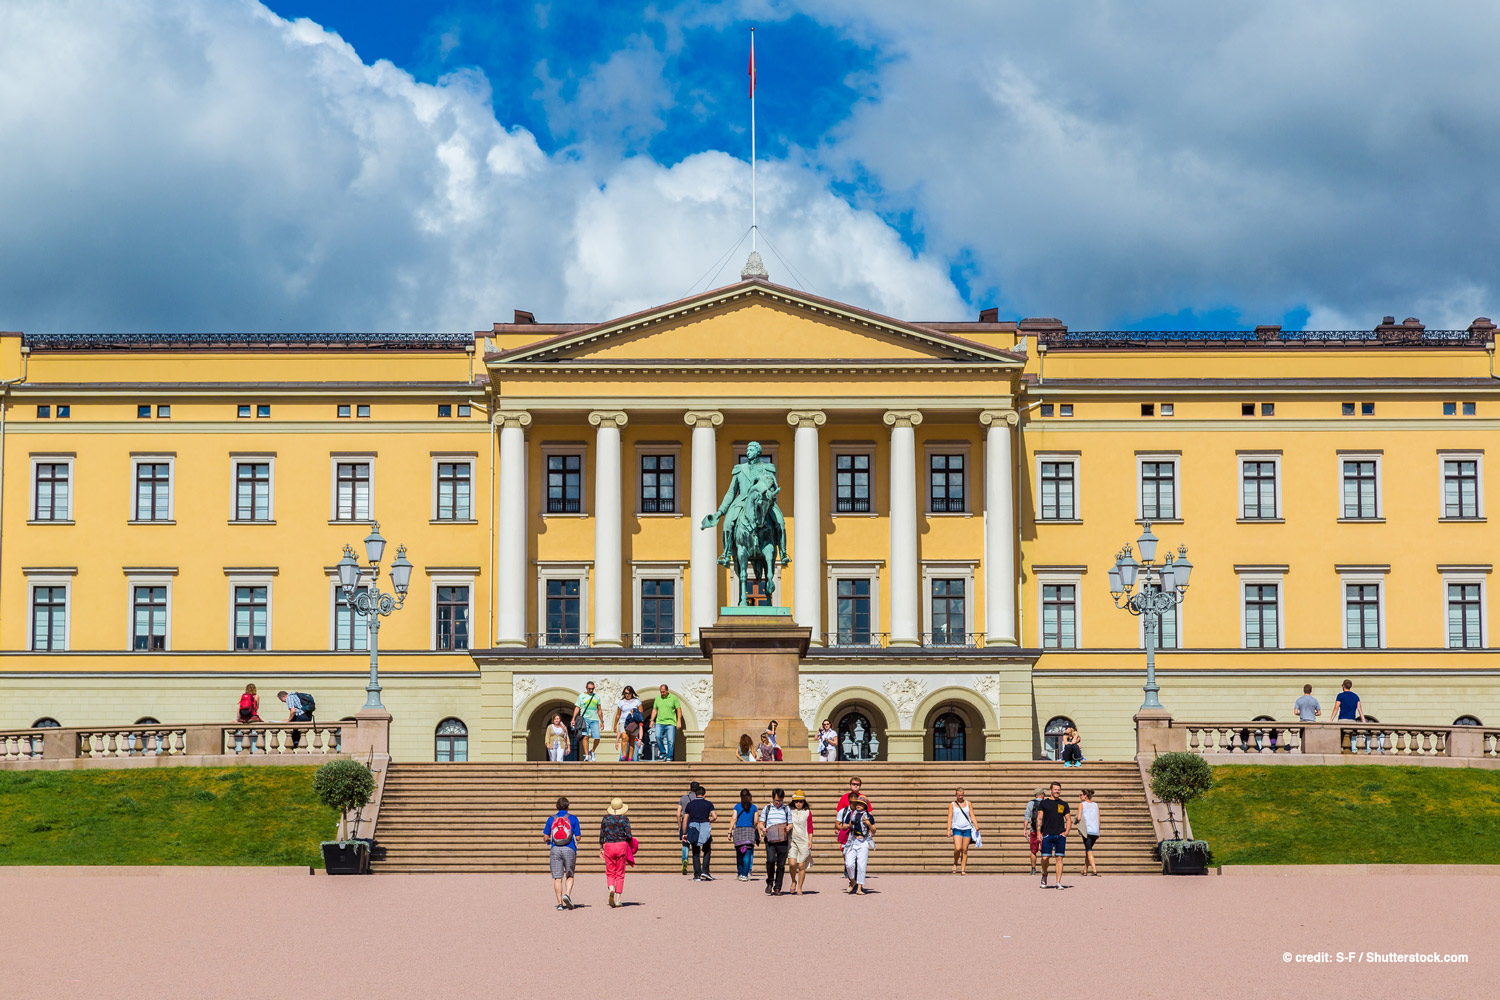 Oslo-Royal-Palace-240826561.jpg